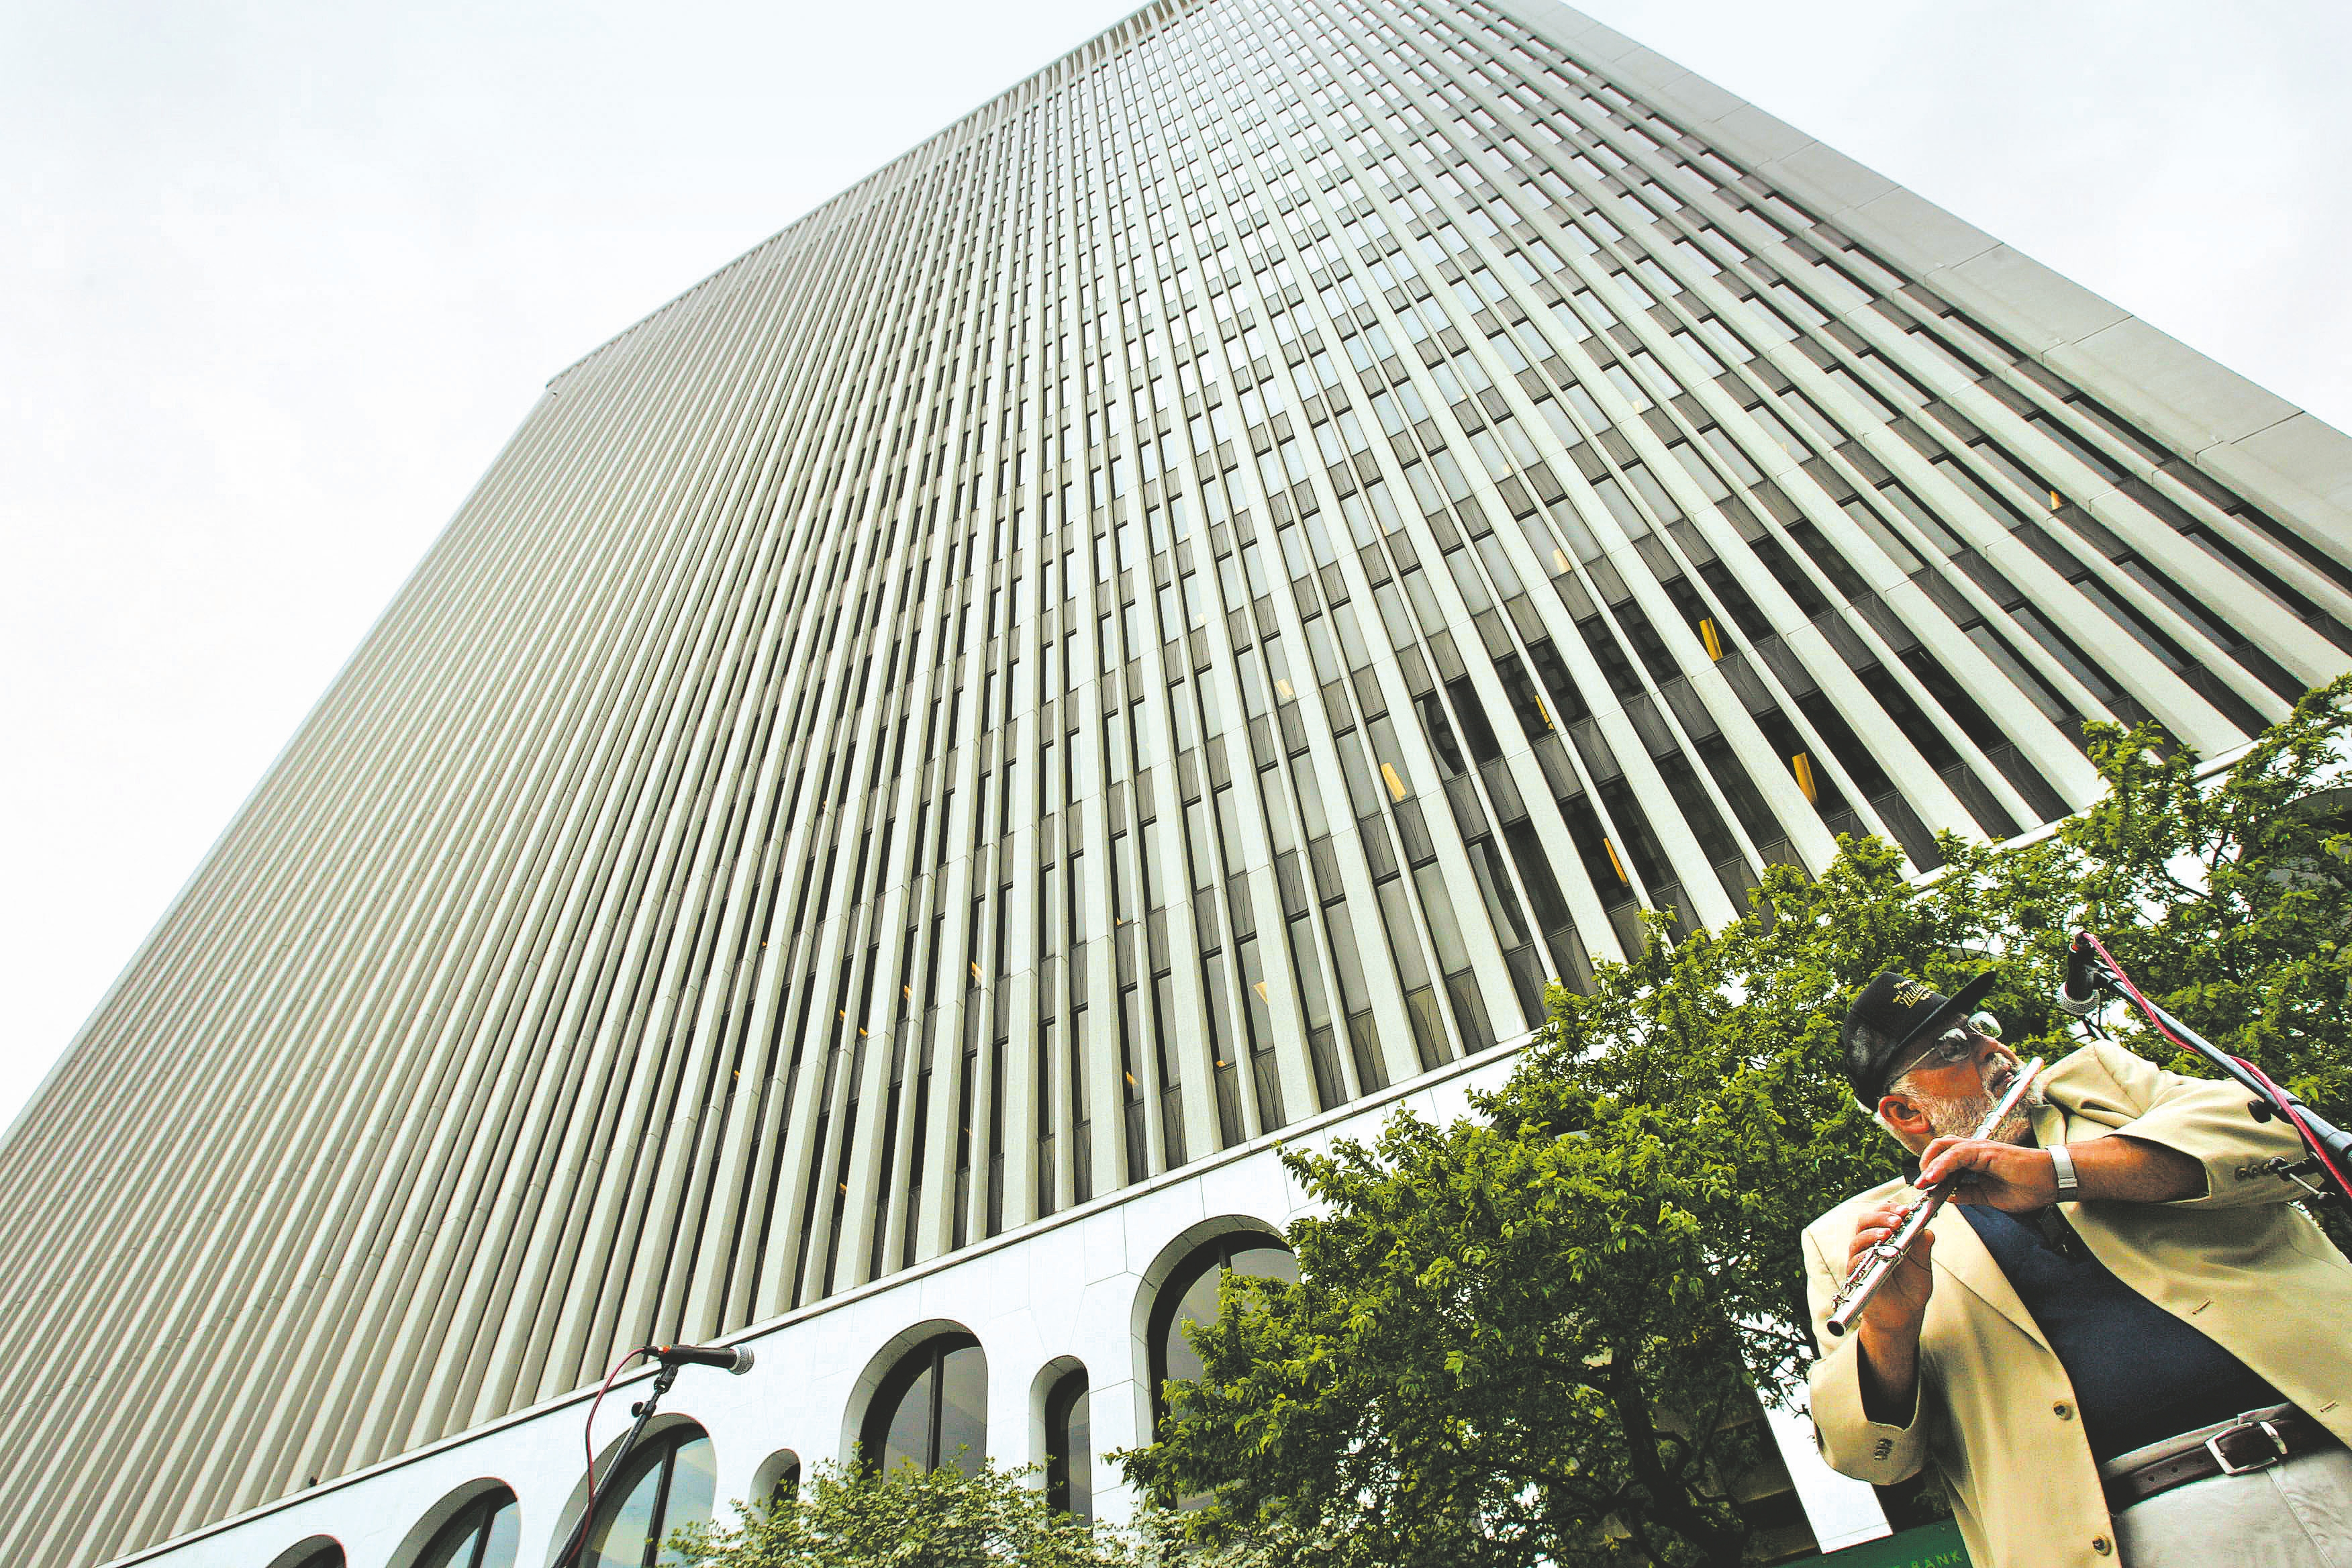 M&T Bank Corp., coming off its first full quarter of results after Hudson City deal, will hold annual shareholders meeting Tuesday.